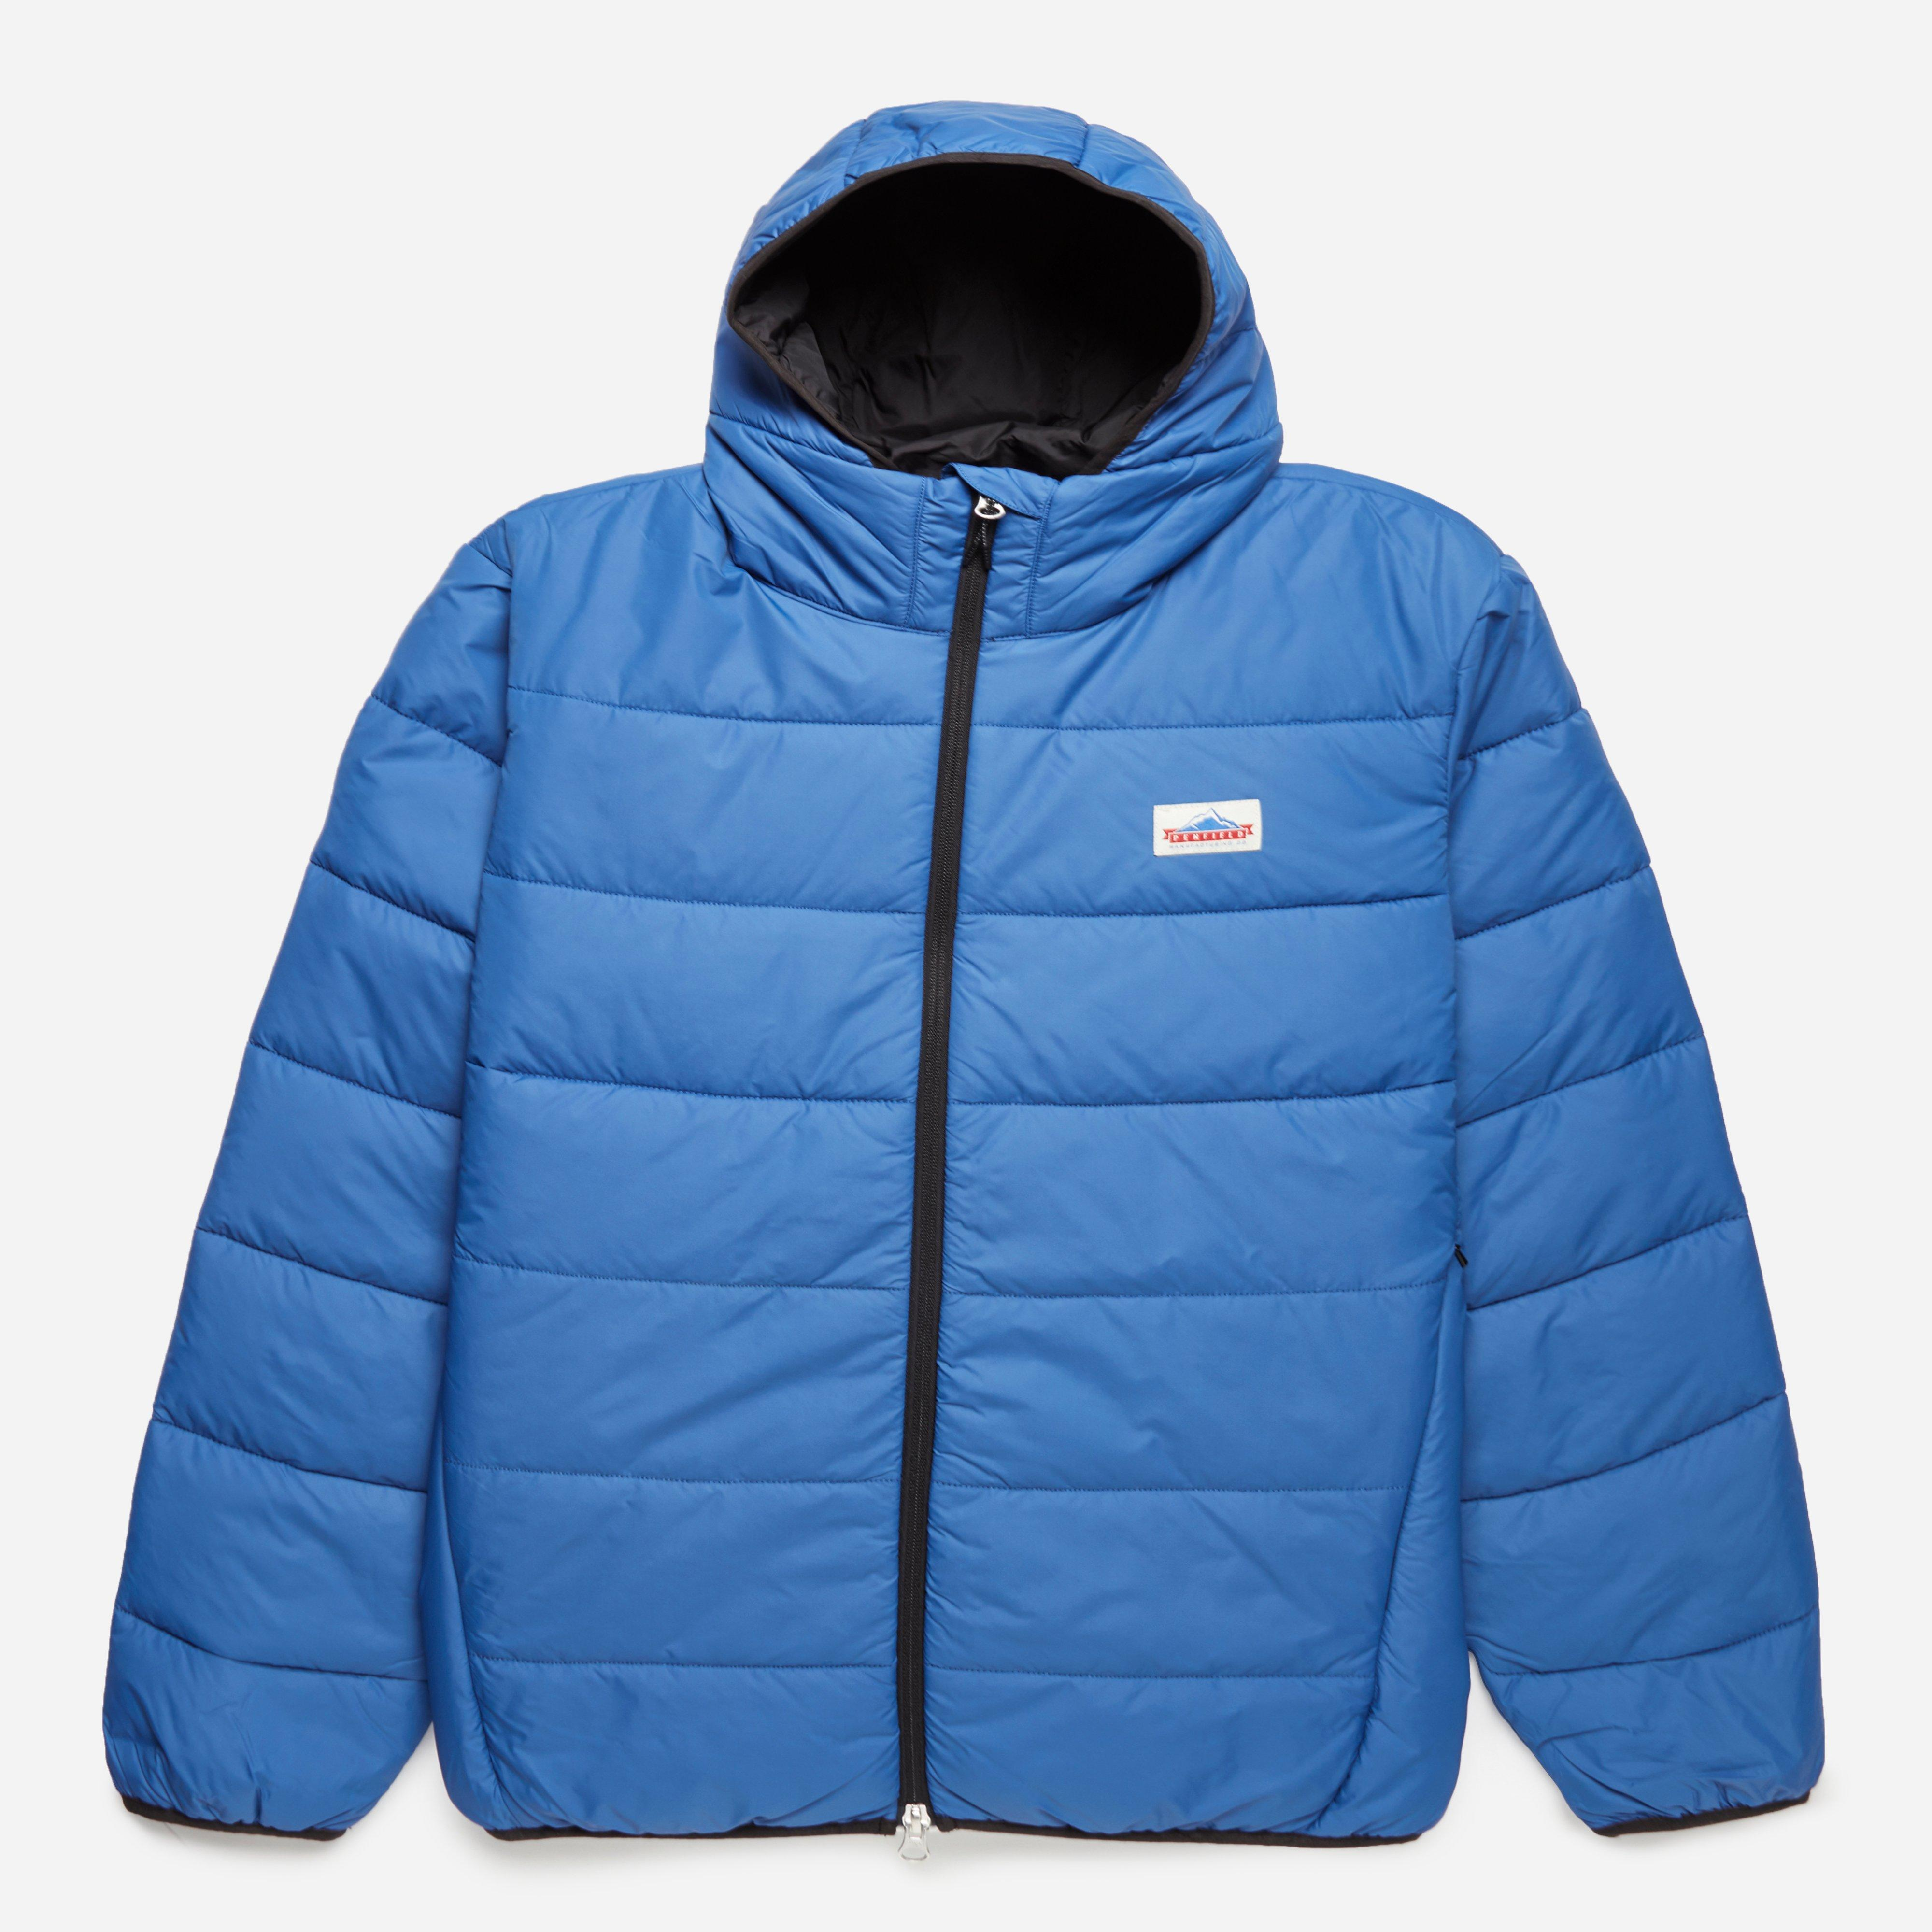 Penfield Mackinaw Insulated Jacket